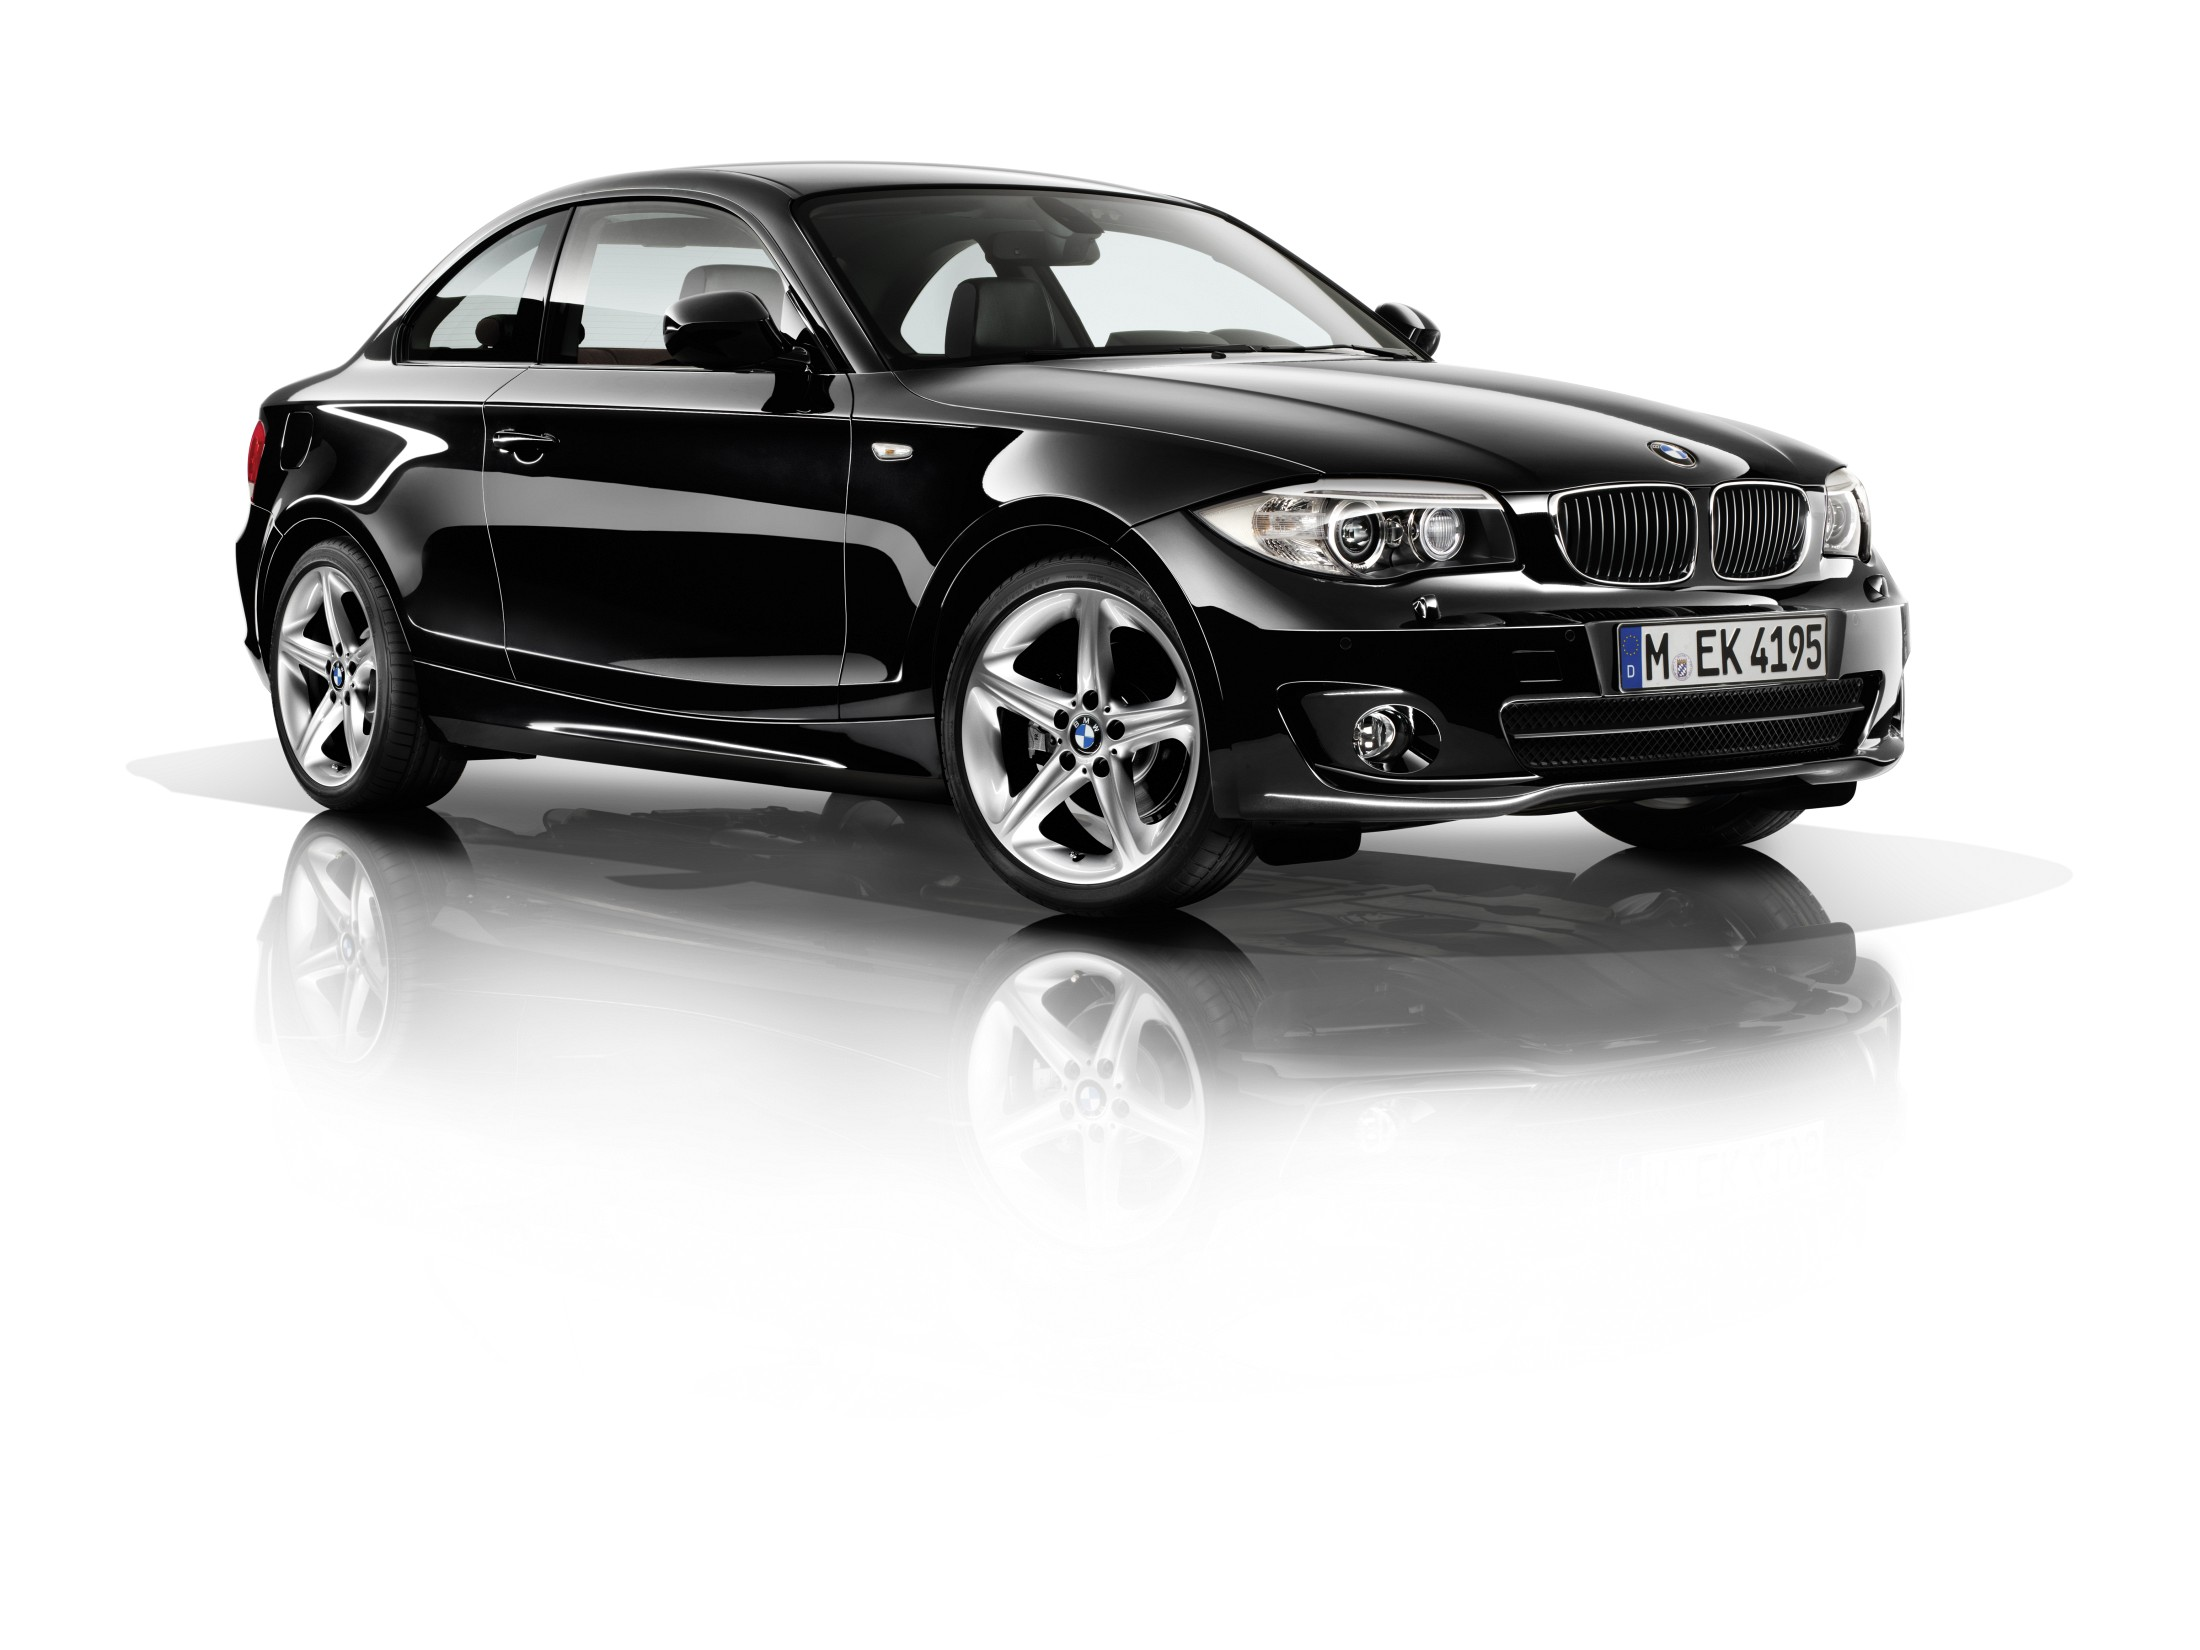 2013 Bmw 1 Series Review Ratings Specs Prices And Photos The Car Connection